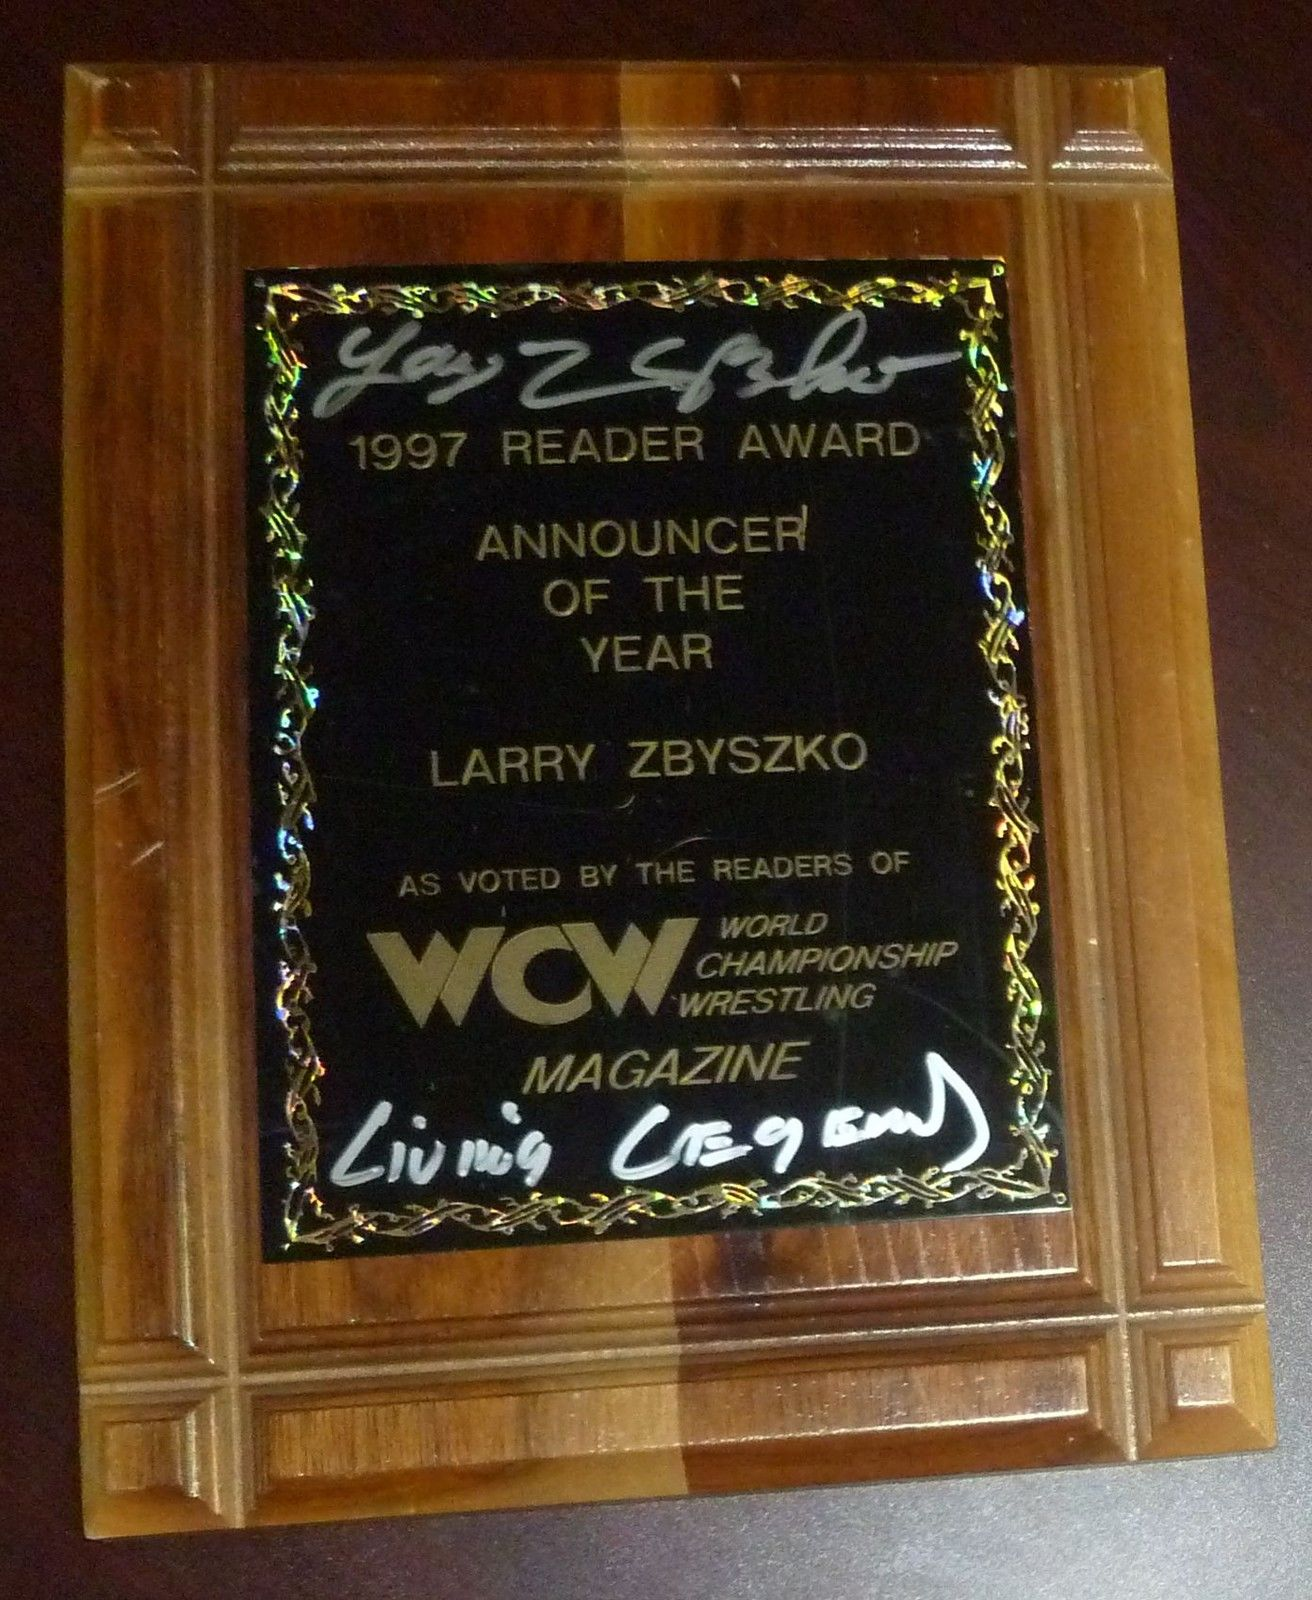 Larry Zbyszko WCW Magazine 1997 Announcer Of The Year Award